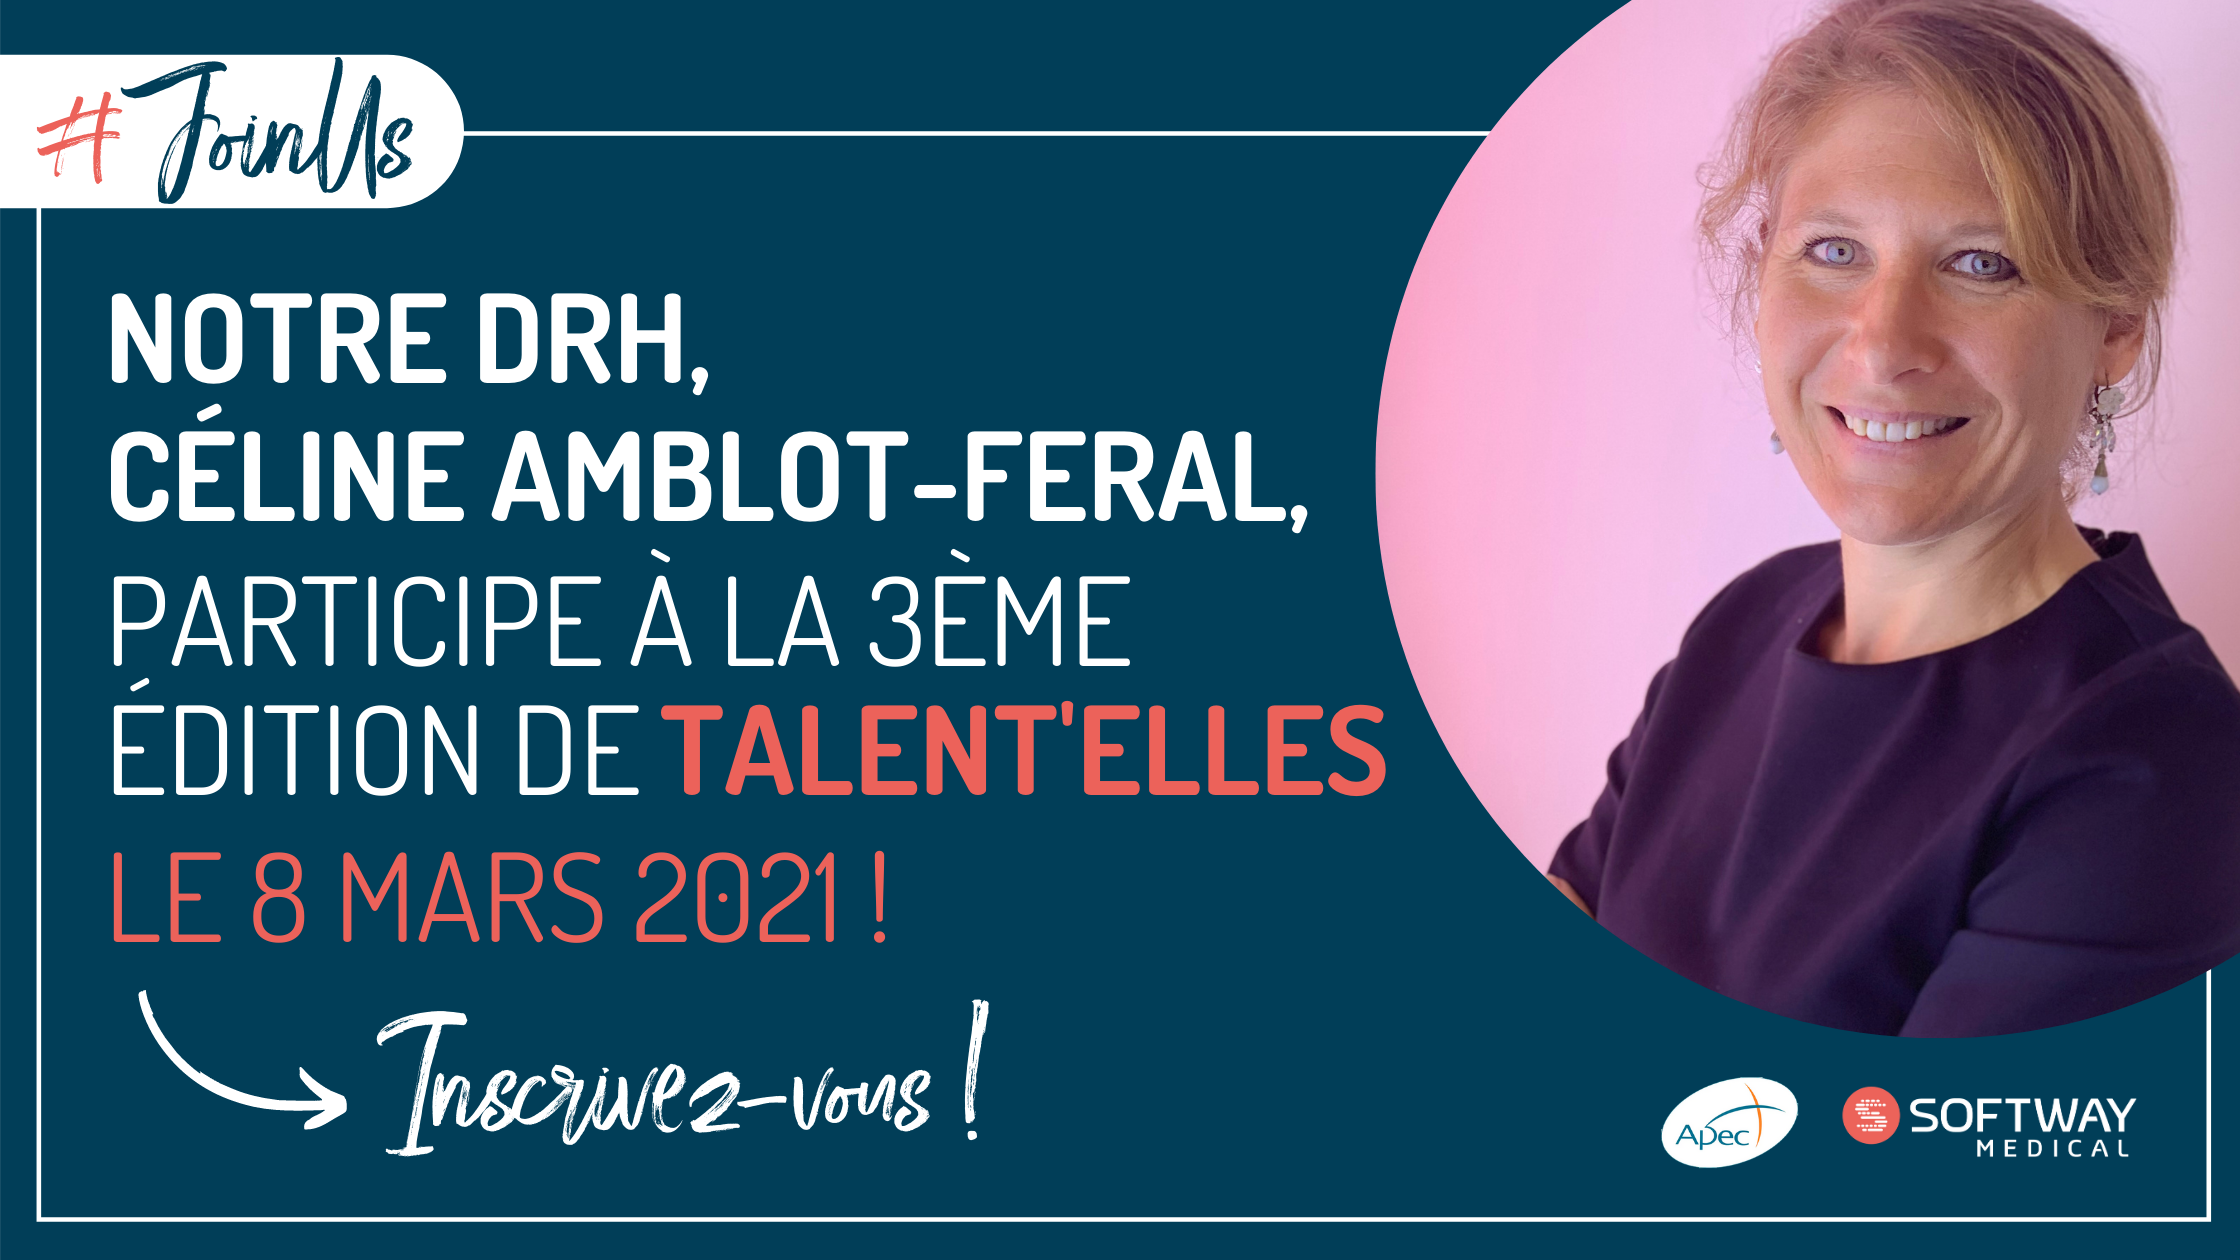 Céline Amblot Feral, DRH de Softway Medical, participe à la 3ème édition de Talent'elles !